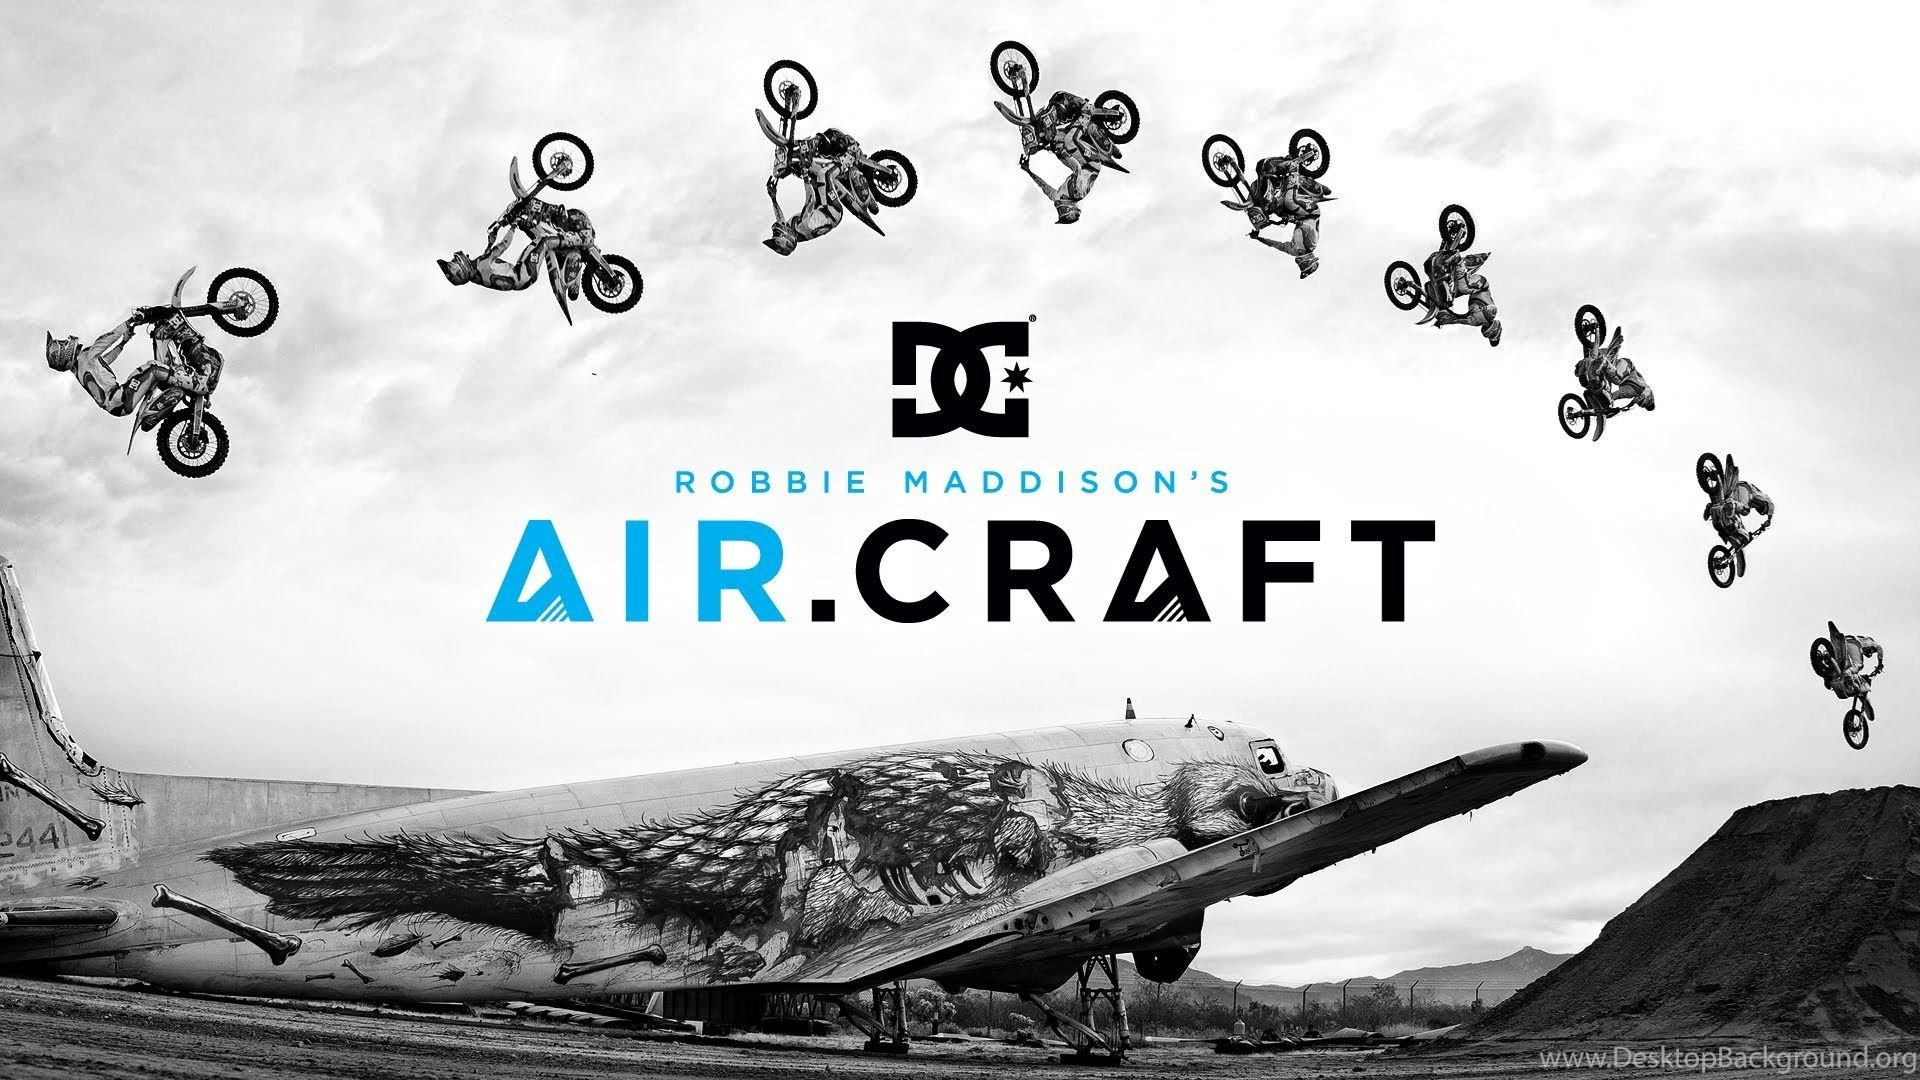 DC SHOES: ROBBIE MADDISON'S AIR CRAFT YouTube Desktop Background